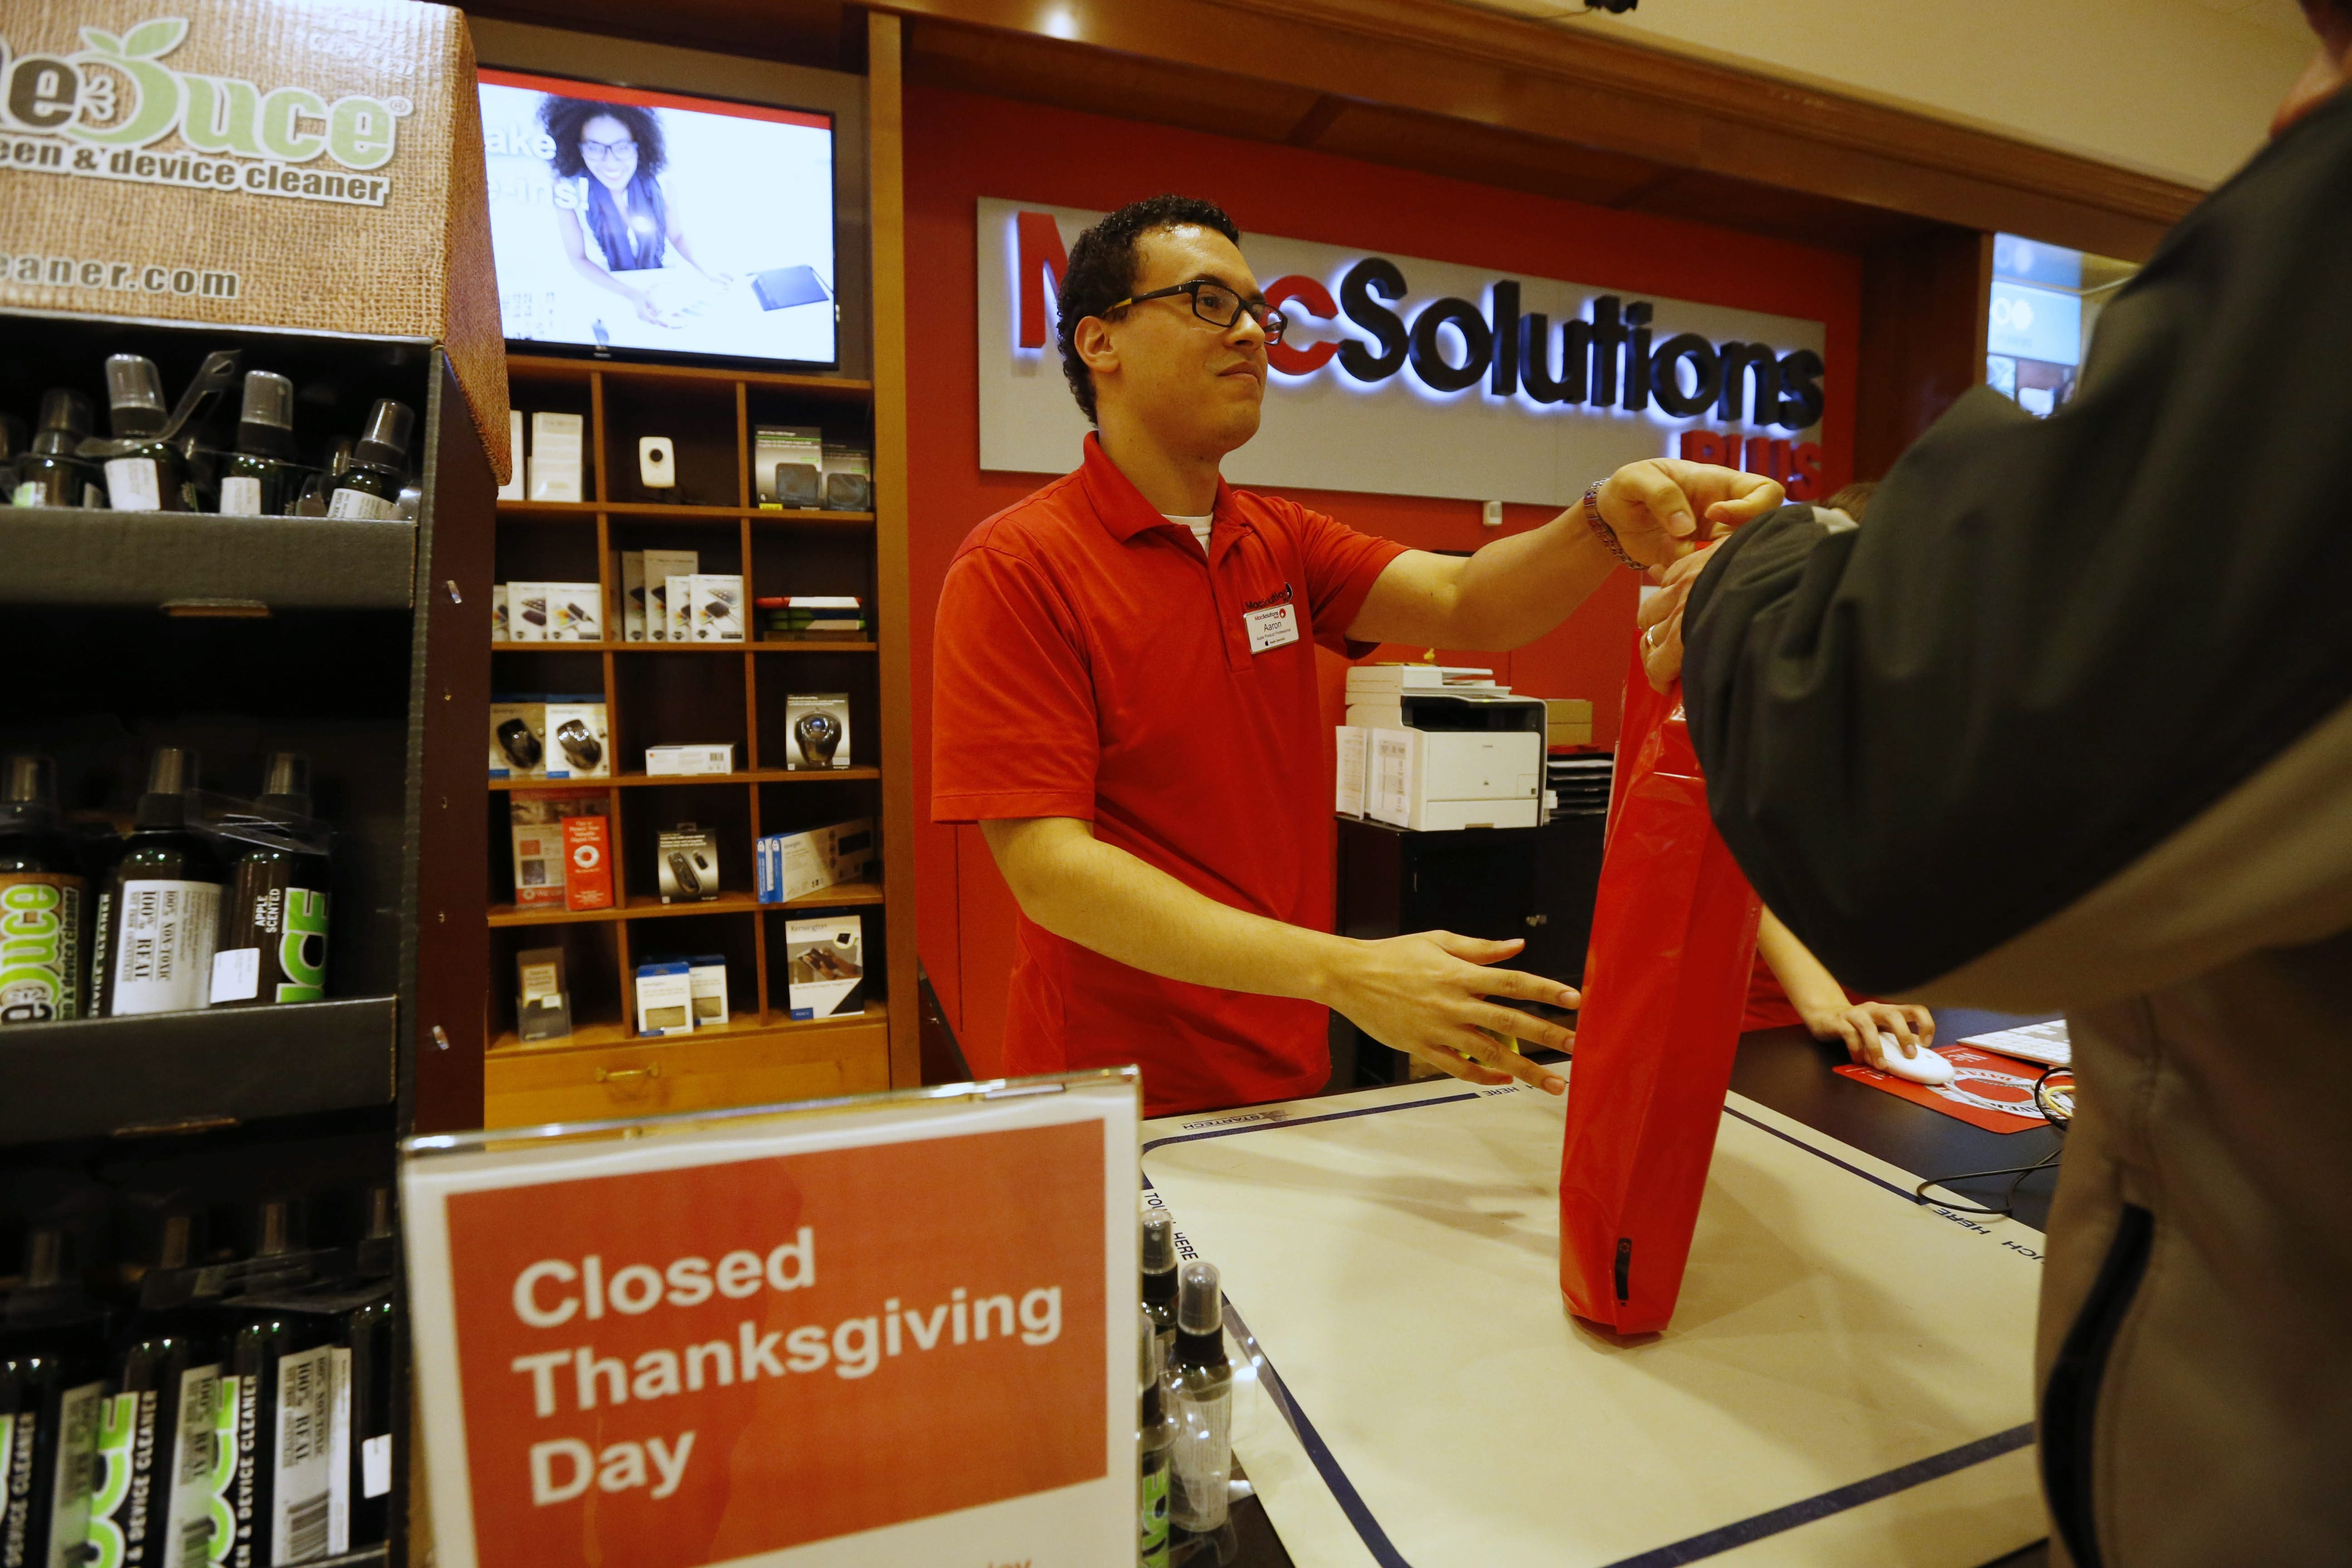 Aaron Miller sells a laptop to a customer at the MacSolutions Plus store at the Eastern Hills Mall, Tuesday, Nov. 24, 2015.  The store will be closed on Thanksgiving Day to let employees spend time with family.  (Derek Gee/Buffalo News)